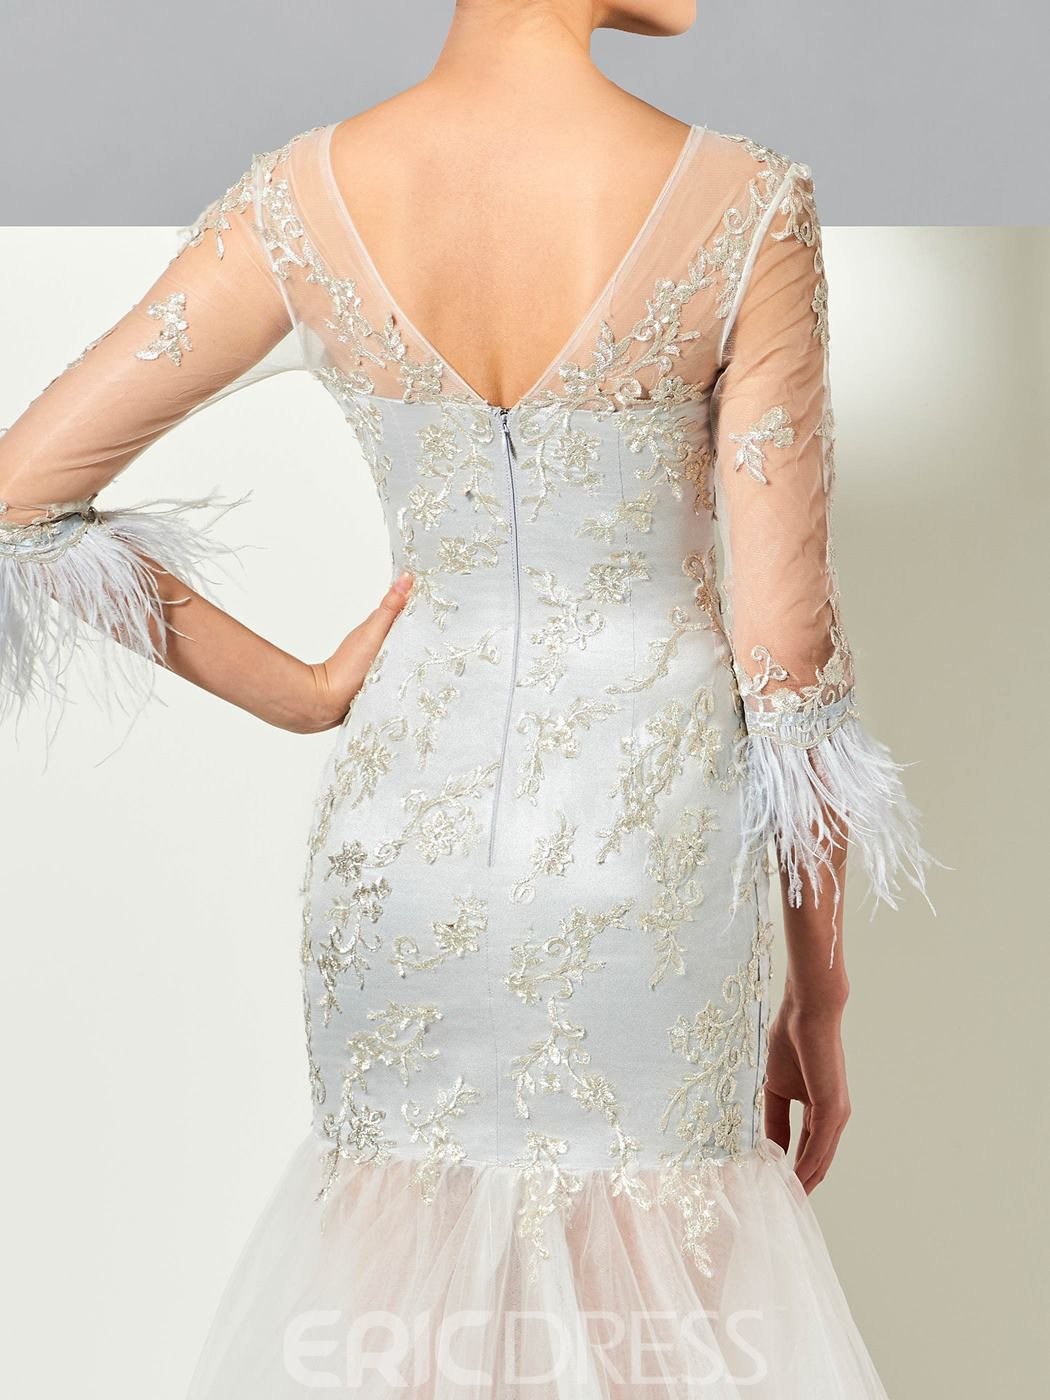 Ericdress Glamorous 3/4 Sleeve Lace Applique Mermaid Evening Dress With Sweep Train